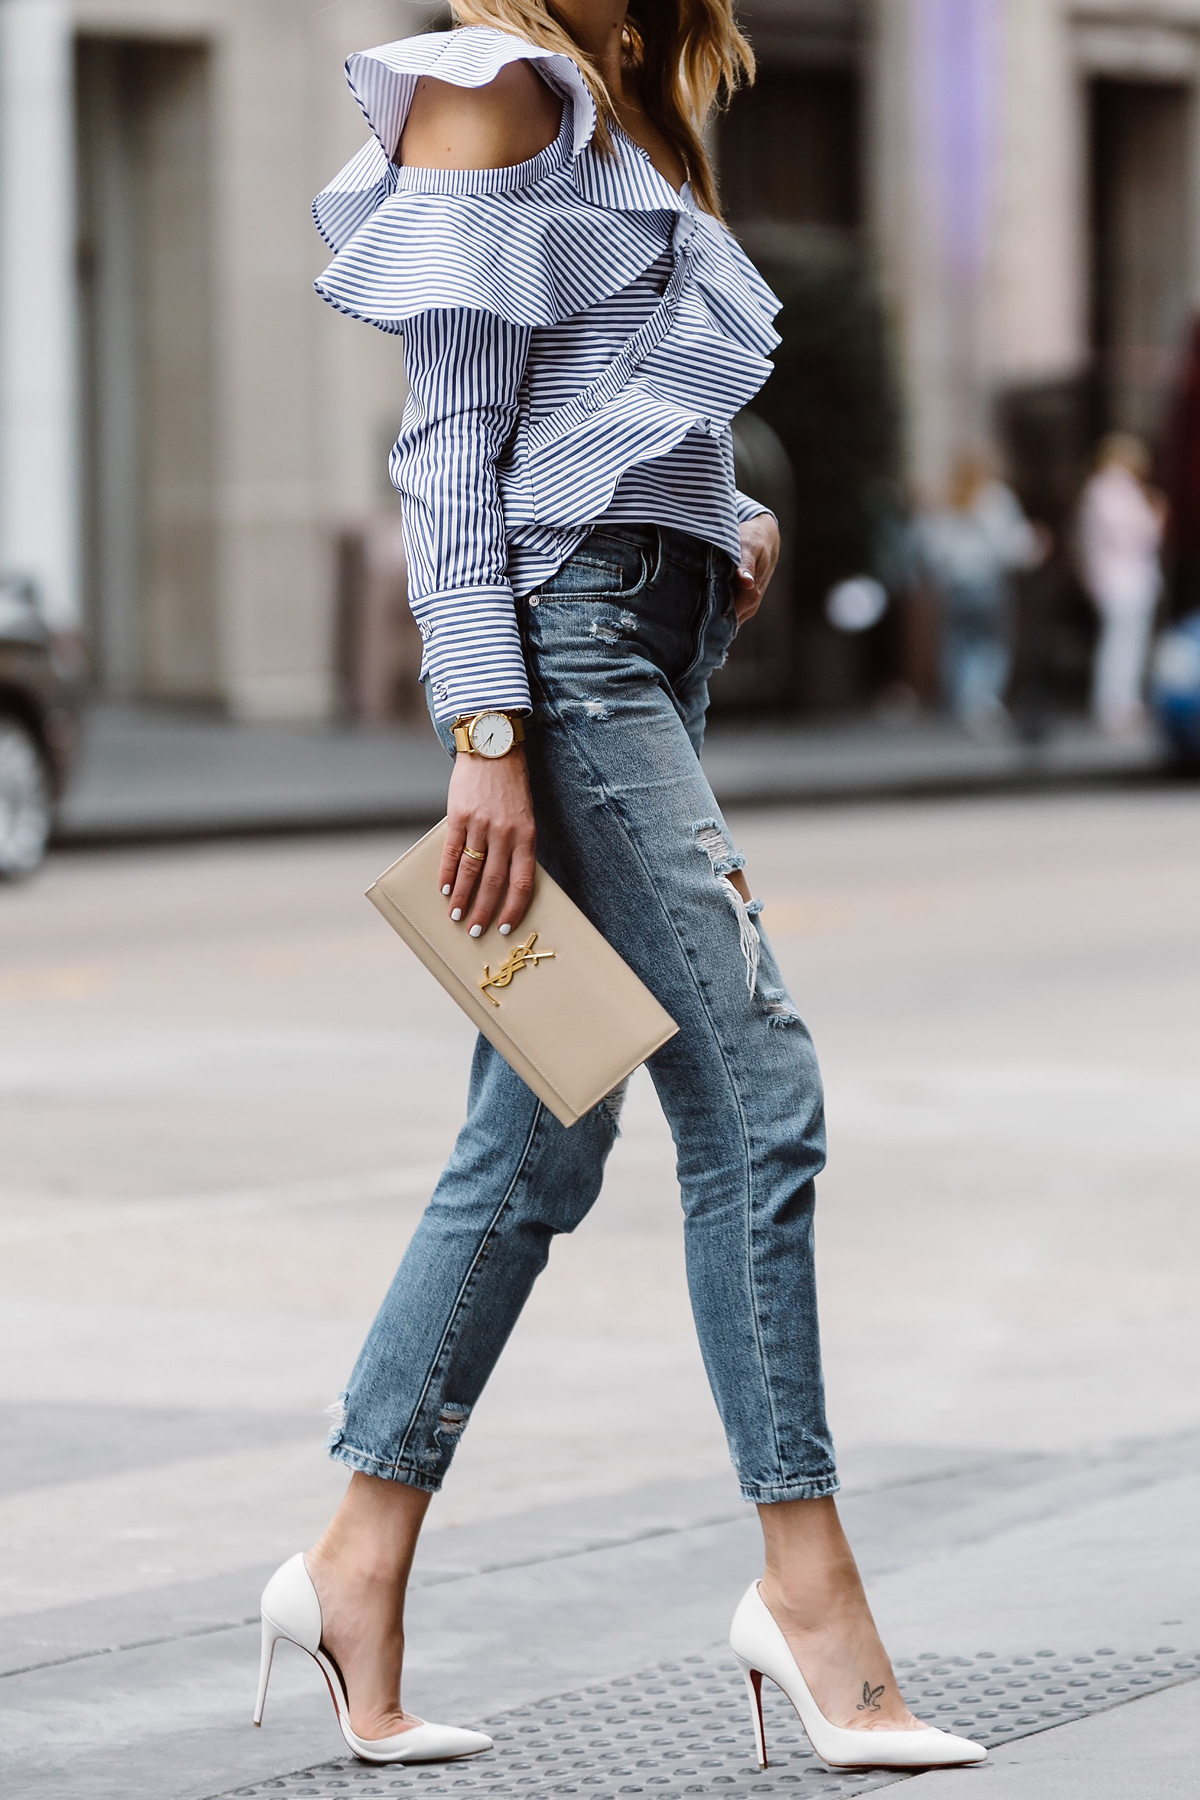 Fashion Jackson, Dallas Blogger, Fashion Blogger, Street Style, Self-Portrait Asymmetrical Ruffle Top, Blue White Stripe Top, Blanknyc Ms Throwback Relaxed Denim Ripped Jeans, Saint Laurent Monogram Clutch, Christian Louboutin White Pumps